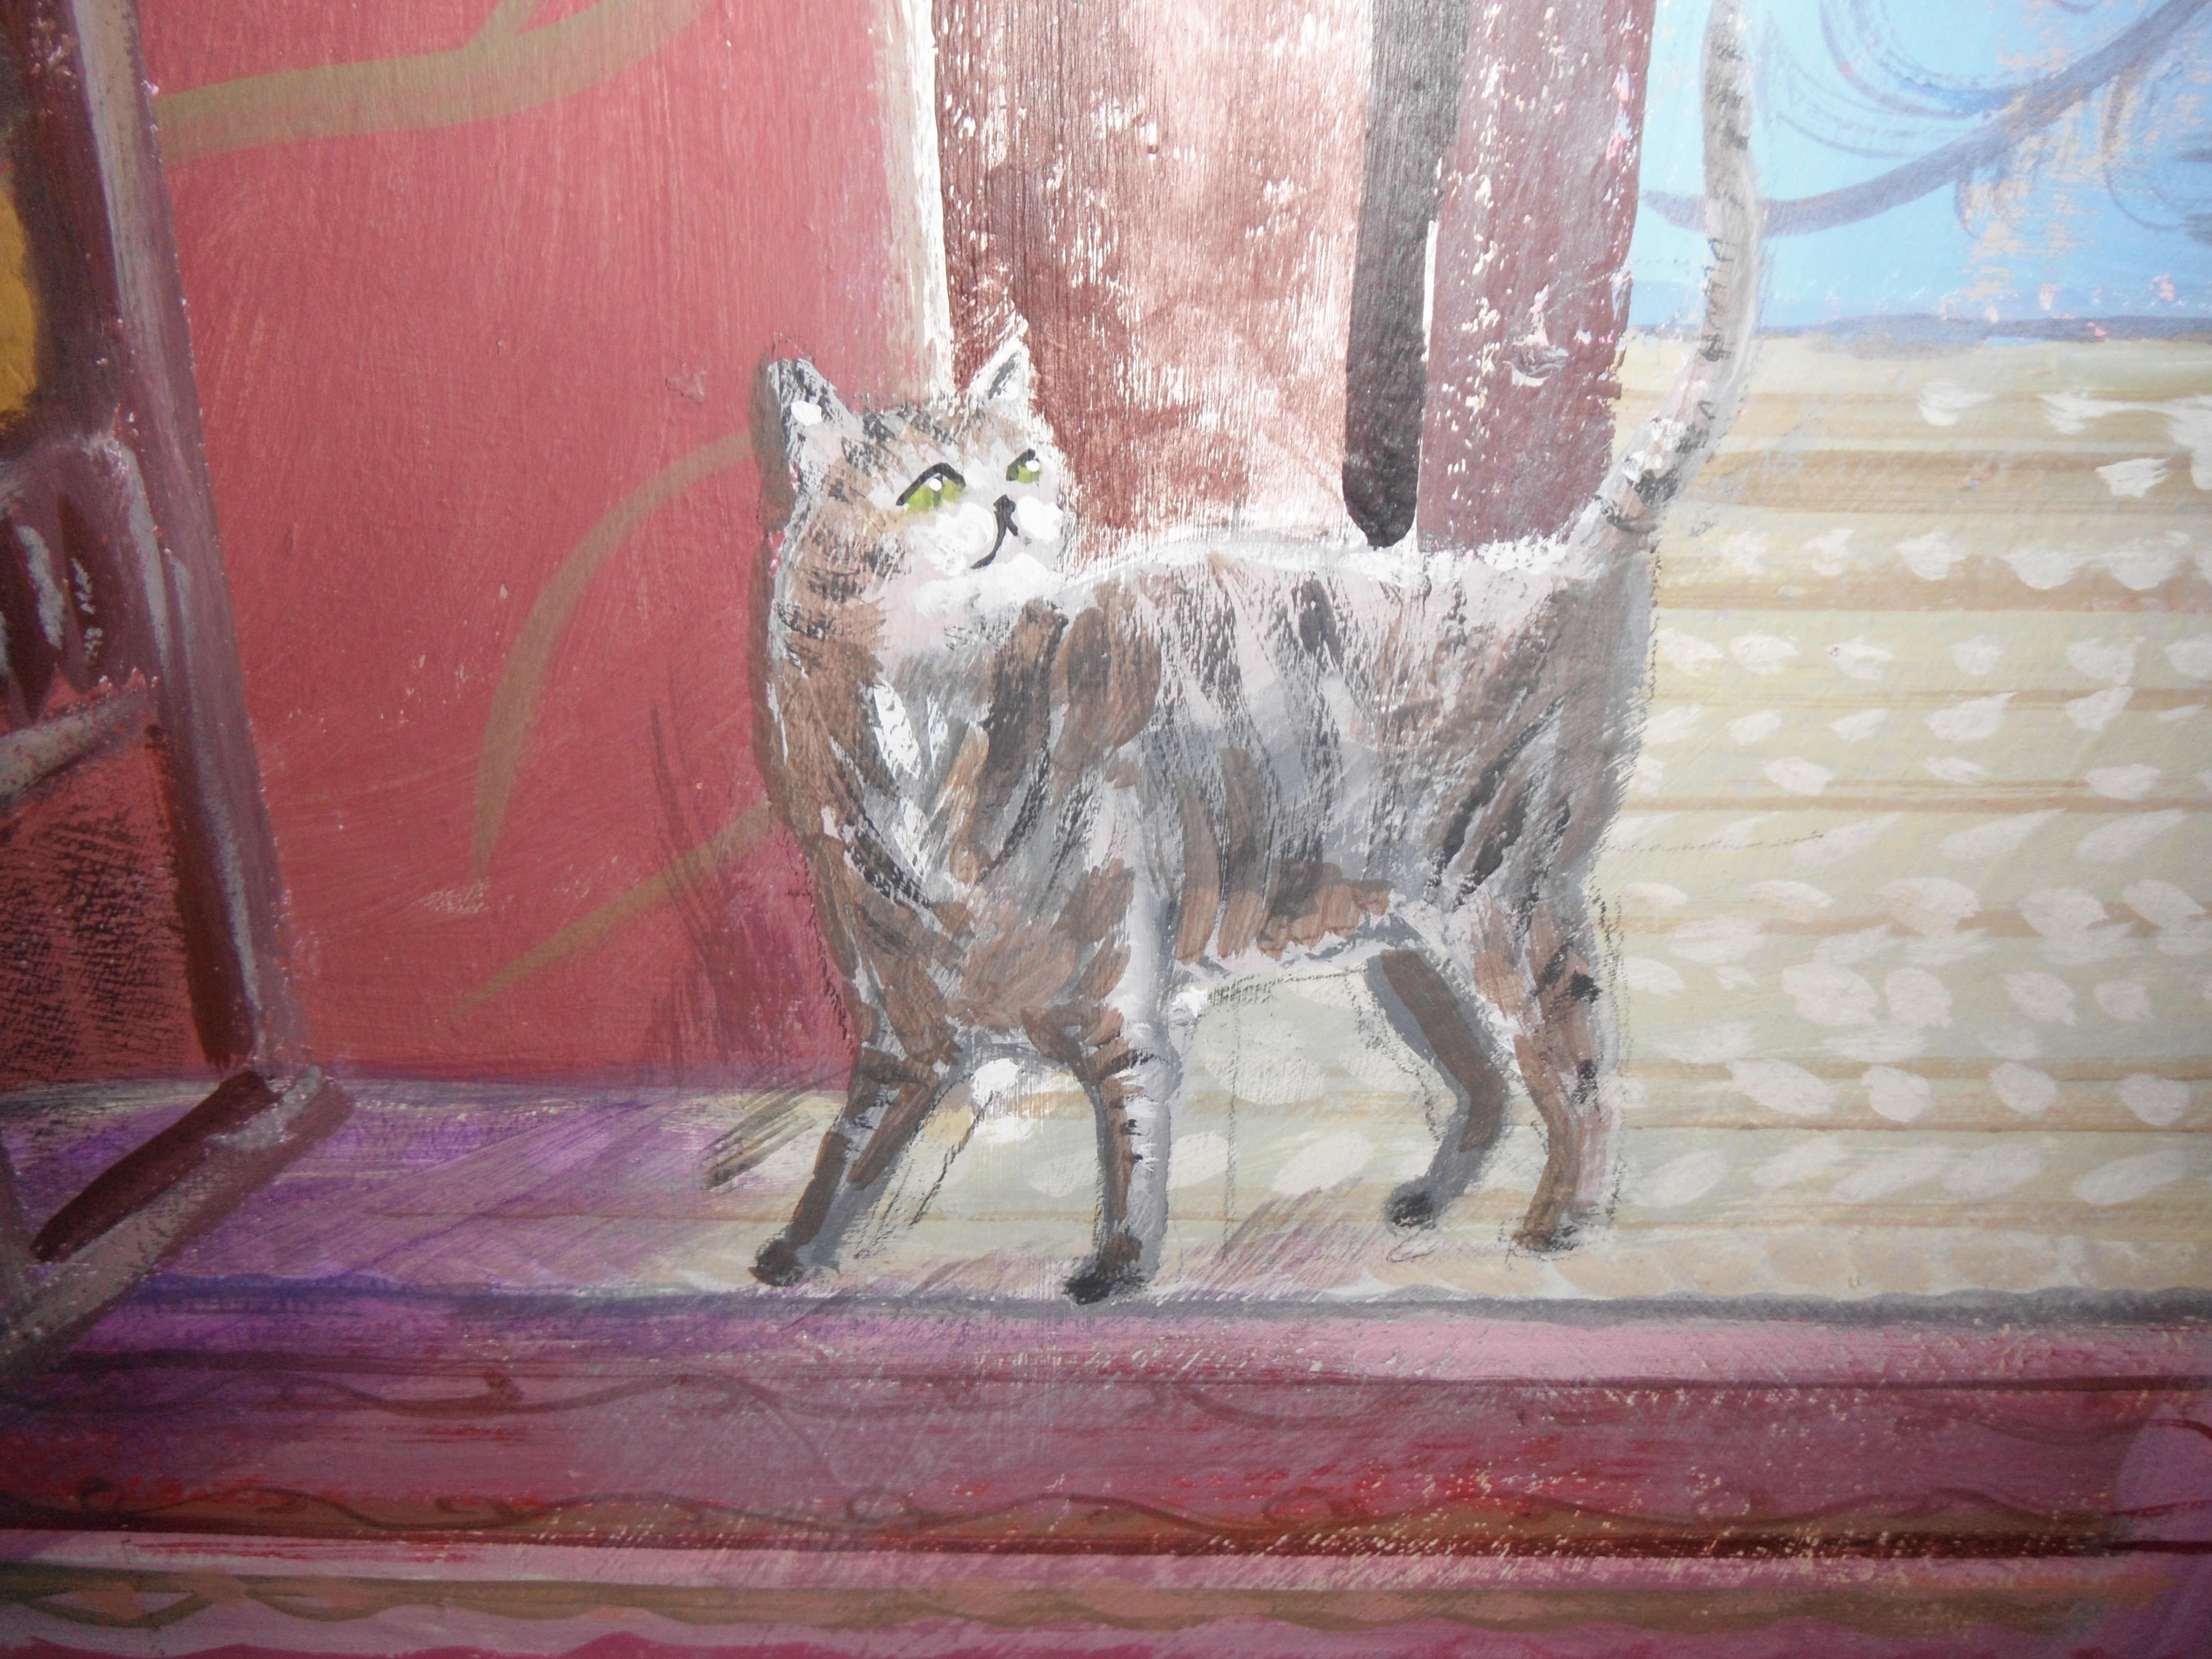 Close up of painted mural at Sudeley Castle. A tabby cat on a patterned carpet.